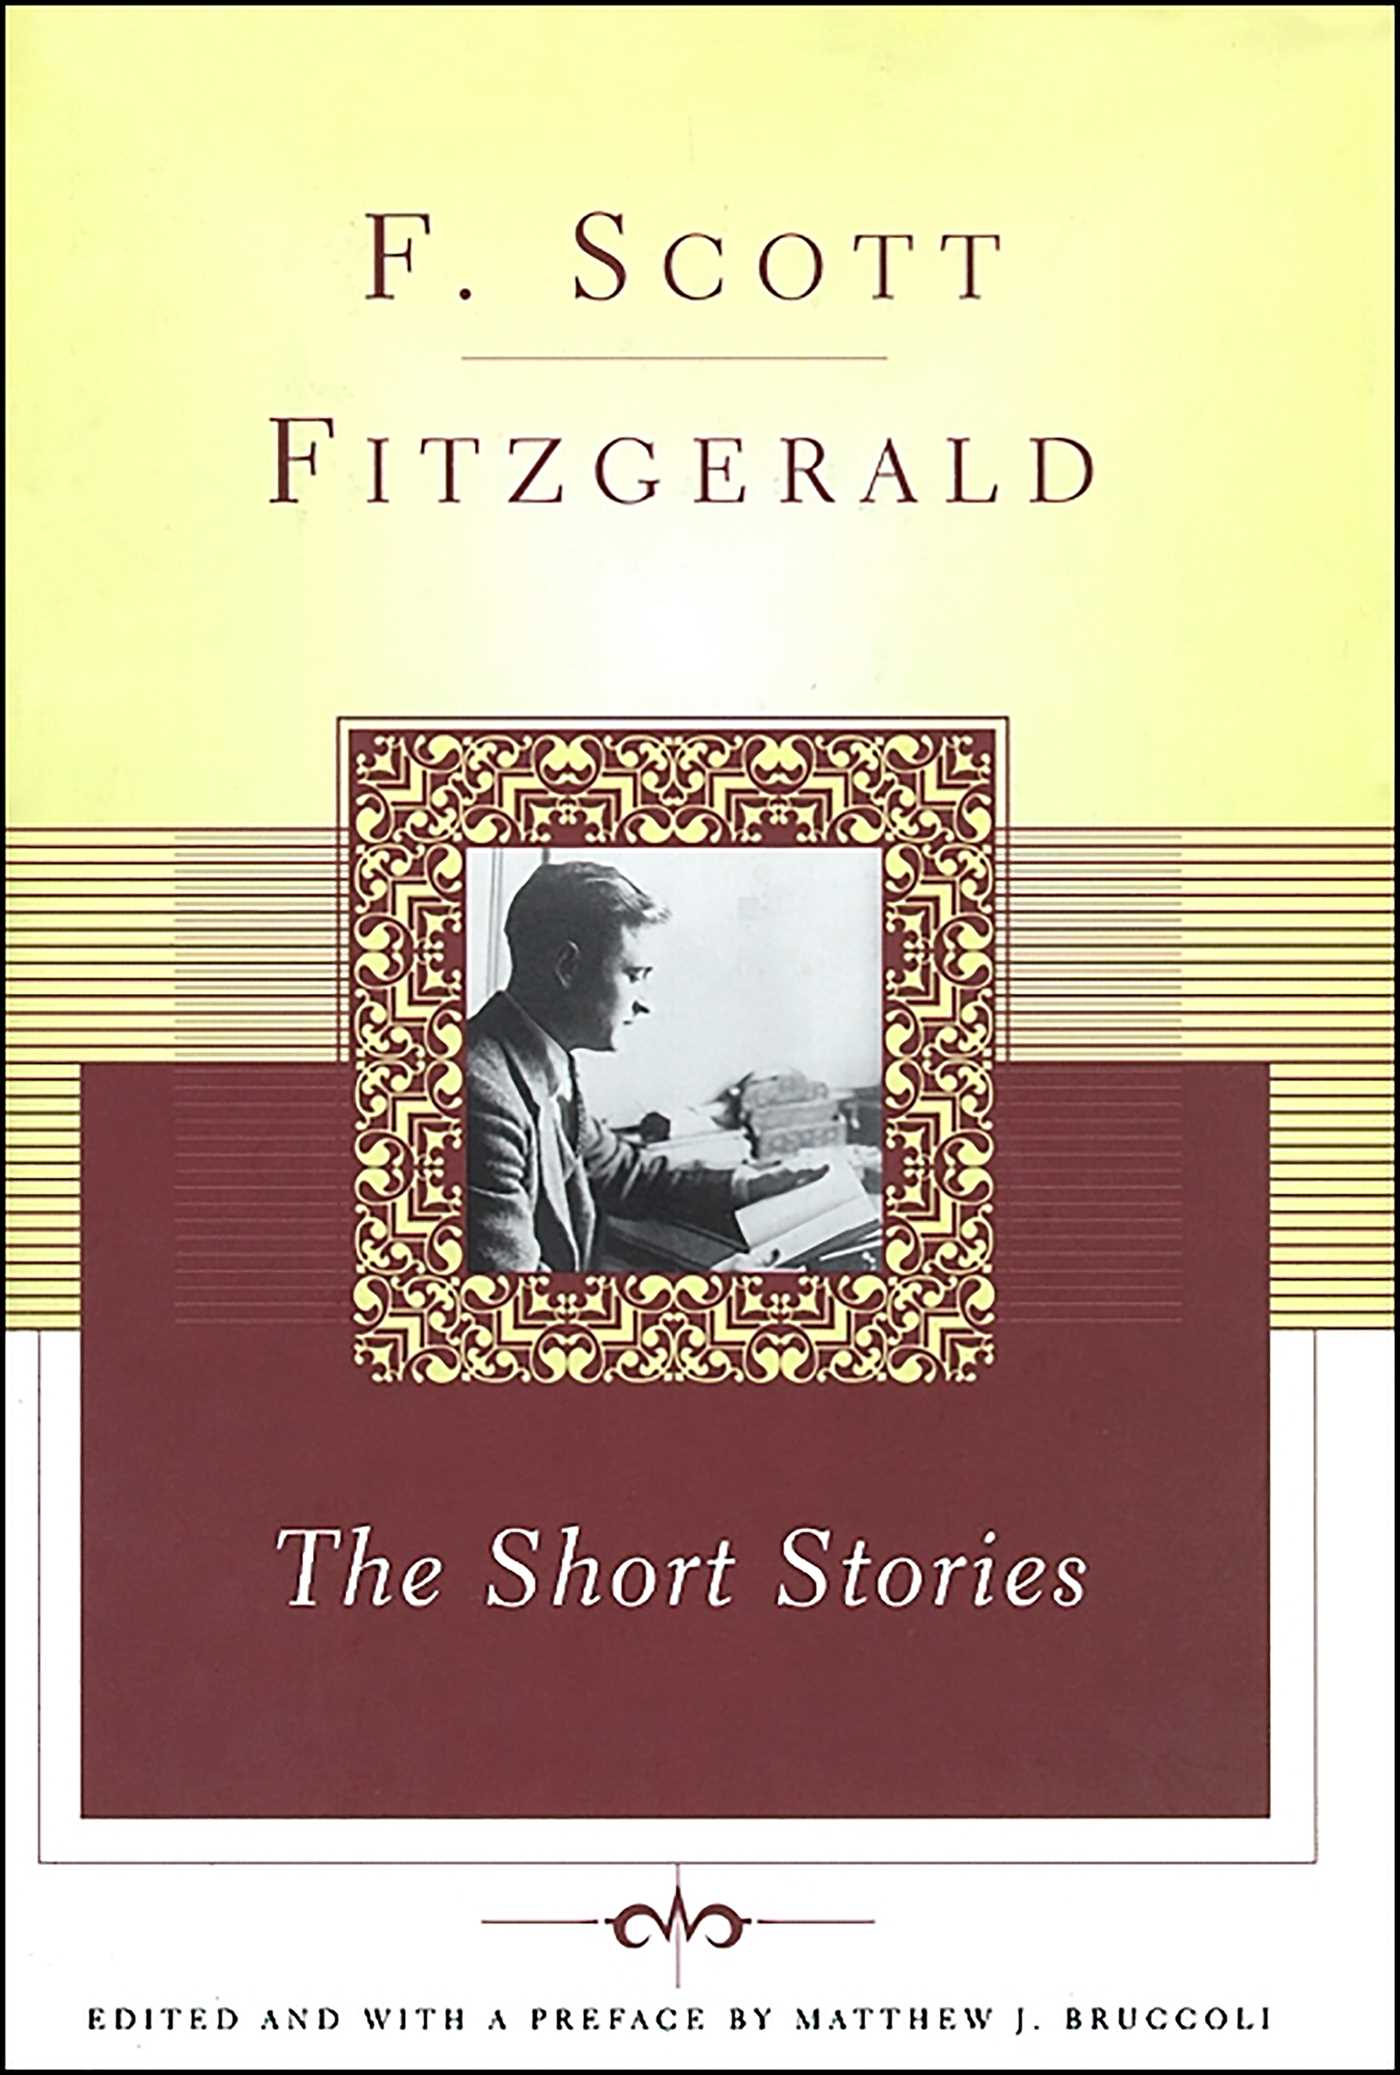 f scott fitzgerald official publisher page simon schuster book cover image jpg the short stories of f scott fitzgerald